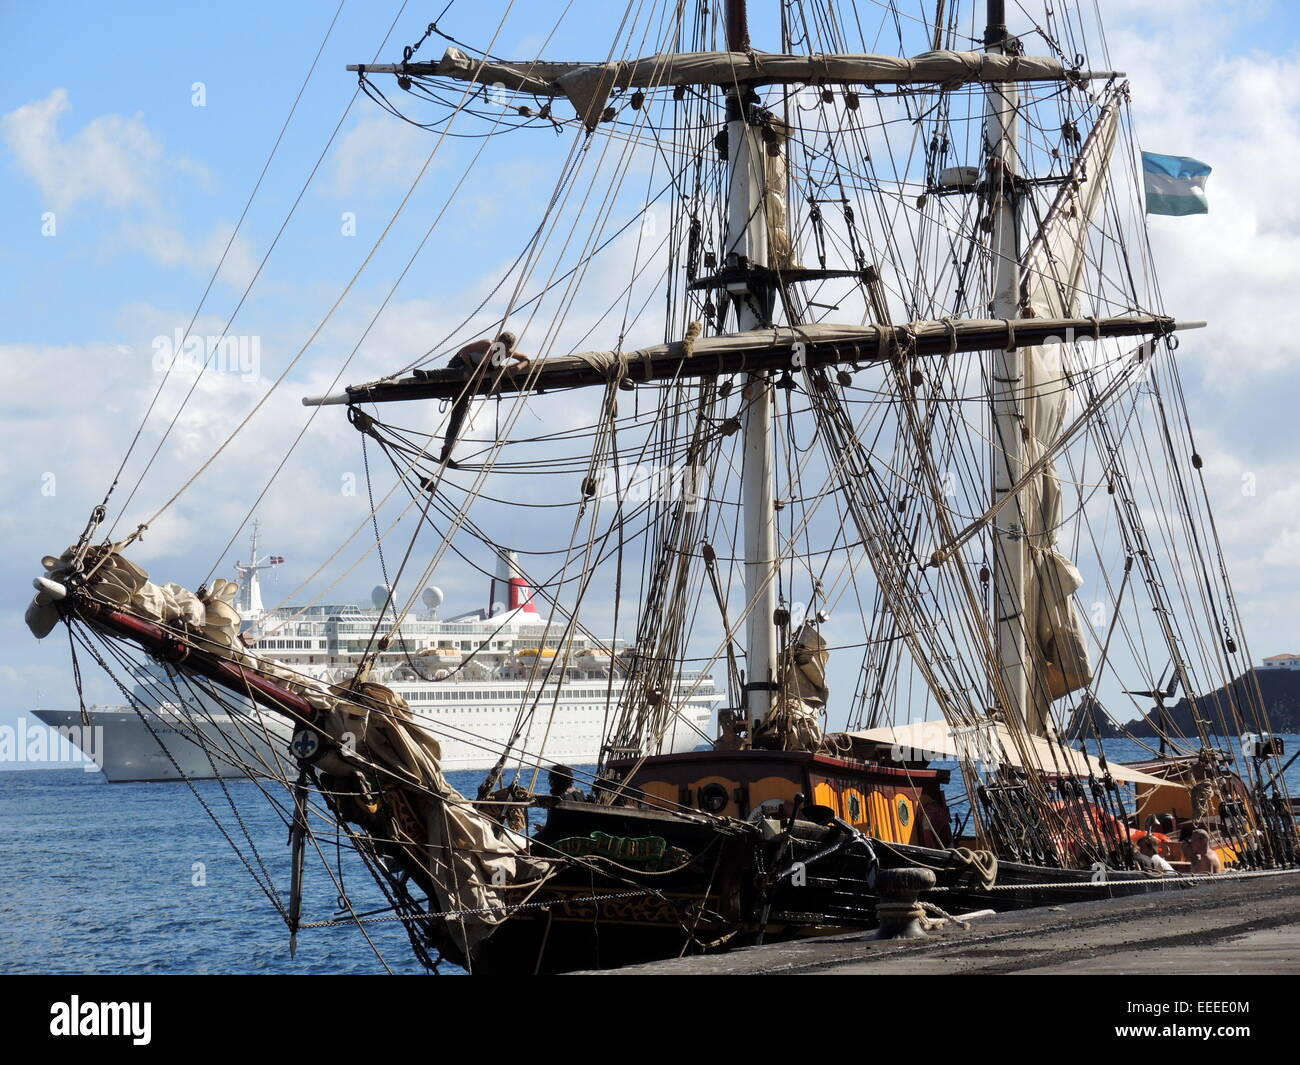 "The engineless Sailing Cargo Ship ""Tres hombres"" in the harbour of the city of Santa Cruz on the canarian island Stock Photo"